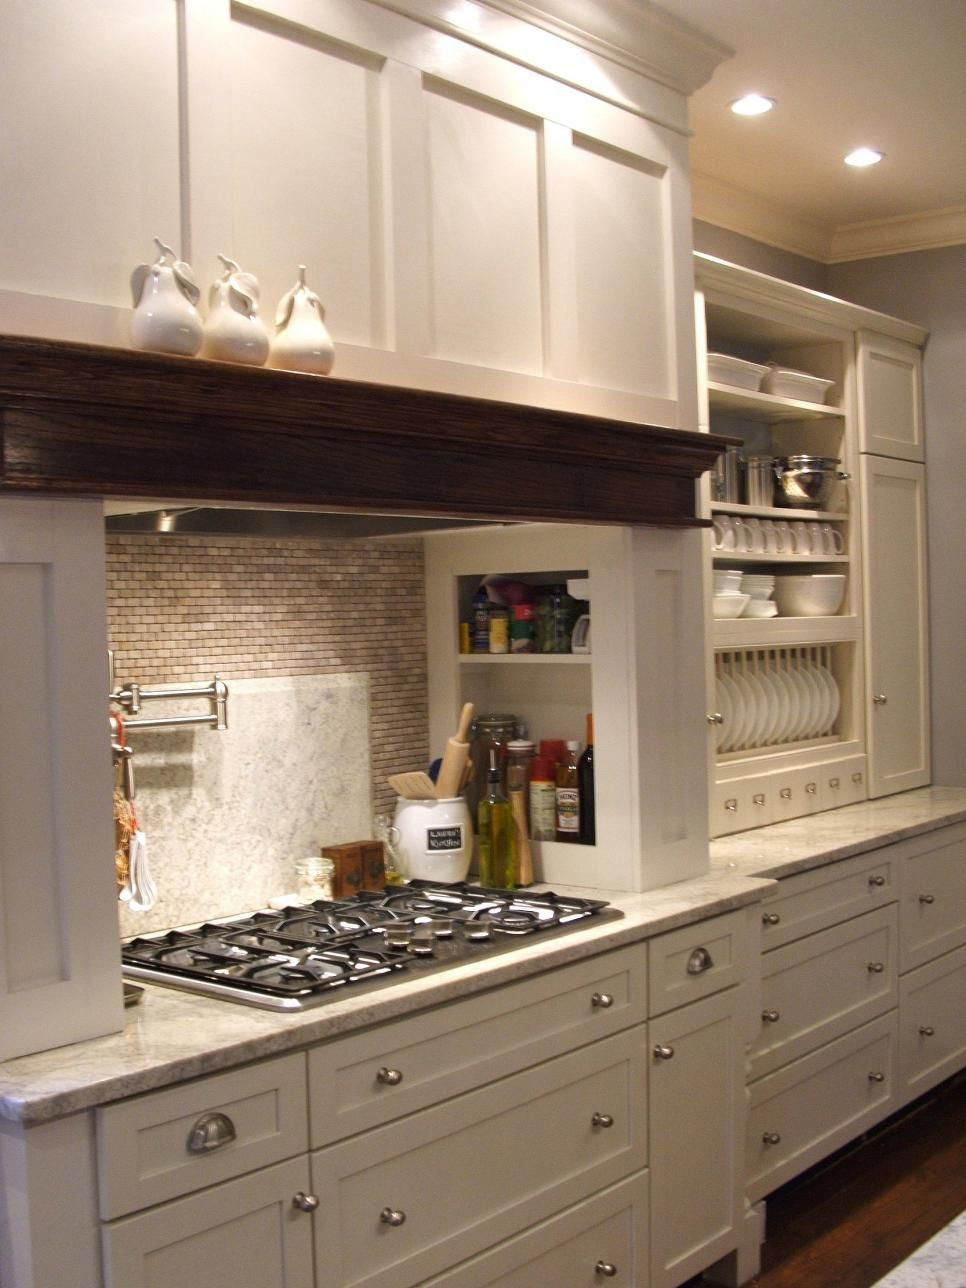 kitchens on a budget: our 14 favorites from hgtv fans | very small